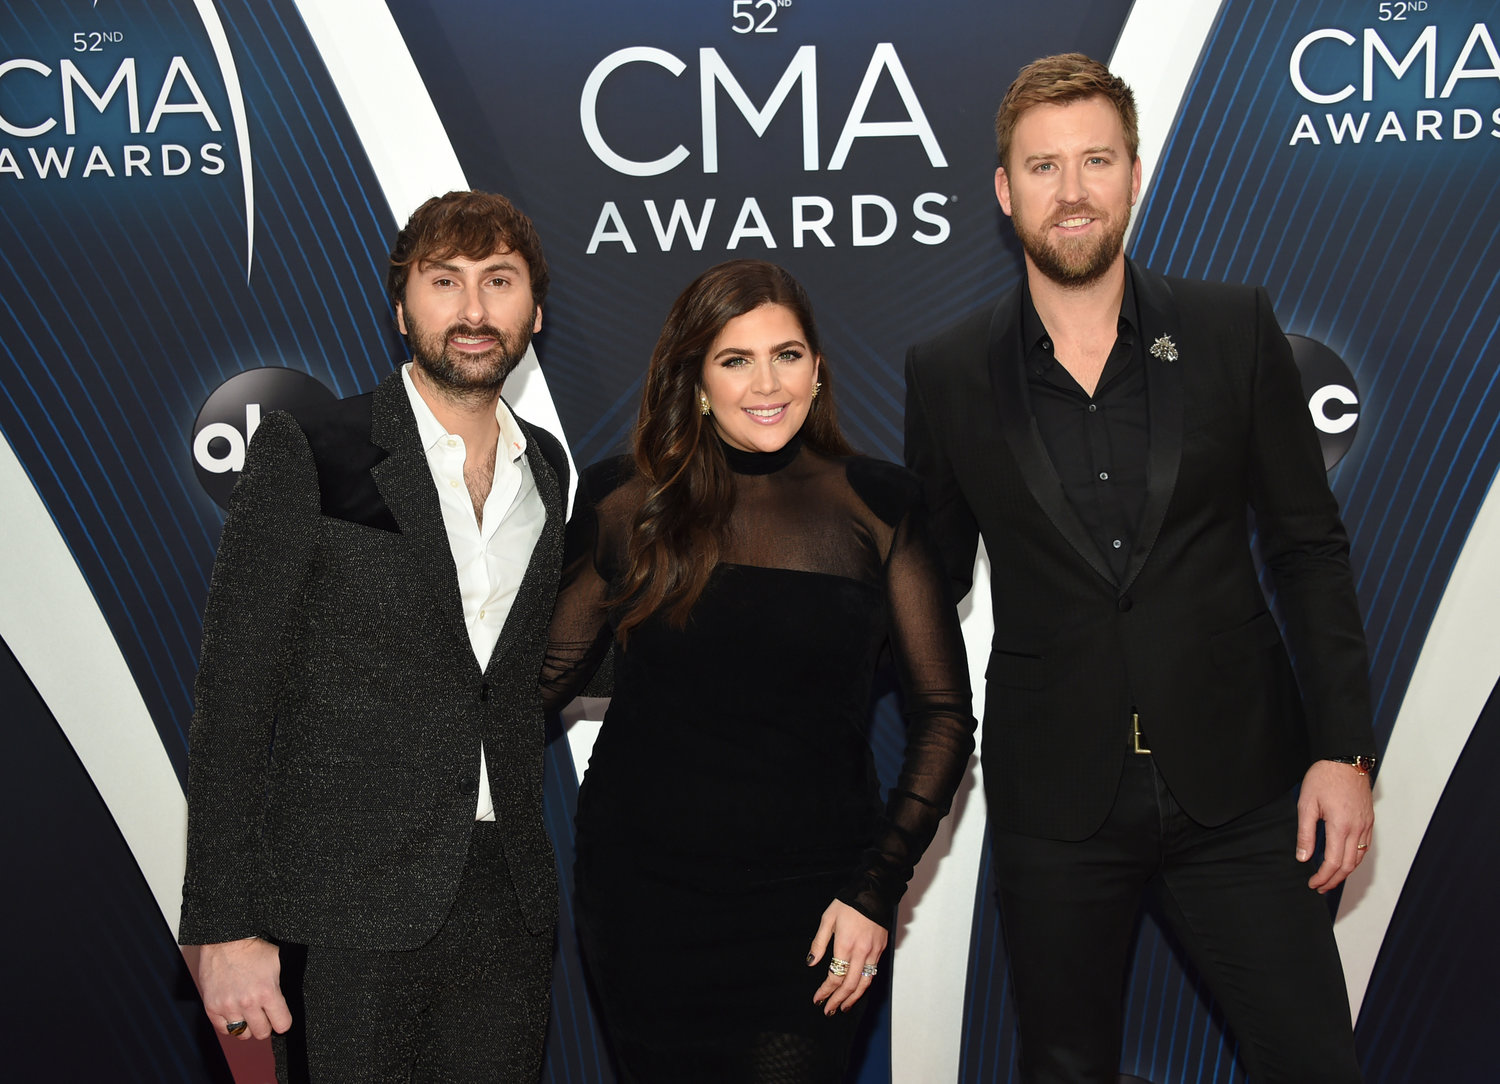 "In this Nov. 14, 2018 file photo, Dave Haywood, from left, Hillary Scott and Charles Kelley, of Lady A, formerly Lady Antebellum, arrive at the 52nd annual CMA Awards in Nashville, Tenn. The Grammy-winning country group, which dropped the word ""Antebellum"" from their name because of the word's ties to slavery, has filed a lawsuit against a Black singer who has used the stage name for years. The vocal group filed the lawsuit on Wednesday in federal court in Nashville after negotiations with Anita White broke down in recent weeks. (Photo by Evan Agostini/Invision/AP, File)"